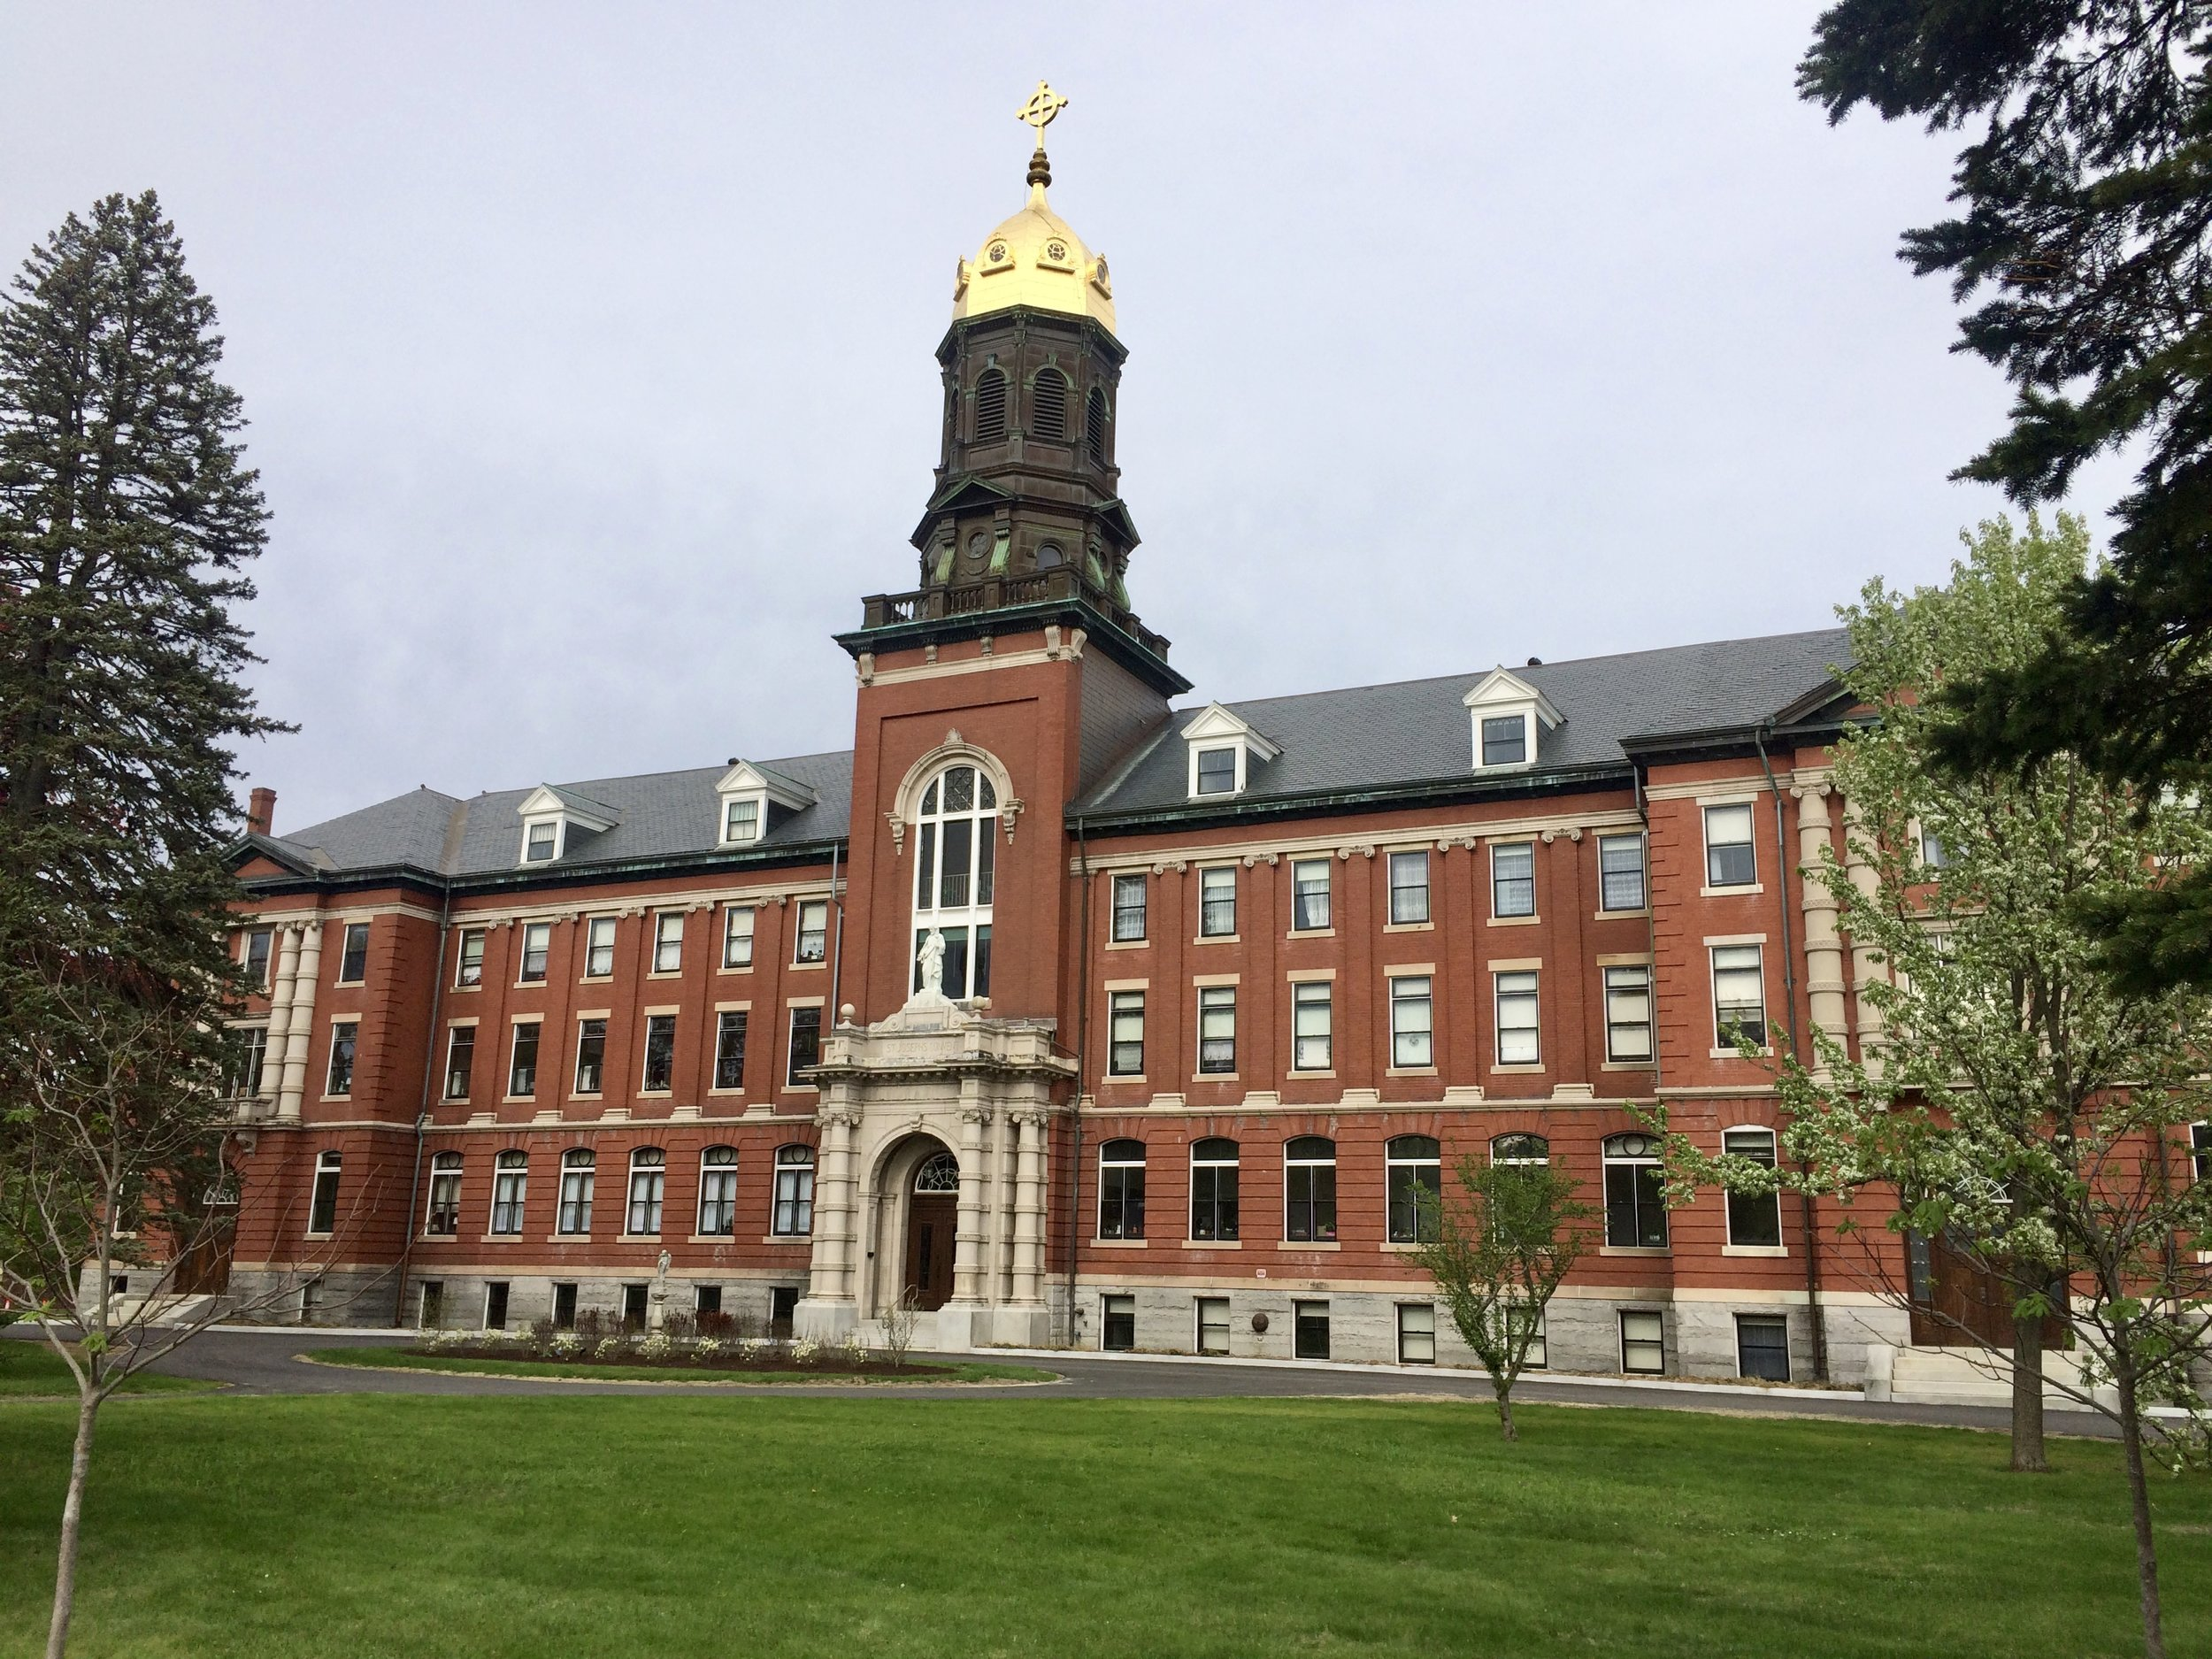 St. Joseph's Convent - the Motherhouse, and the former McAuley High School, 605 Stevens Avenue - No longer education facilities, they had a long history in education on Stevens Avenue and leave behind a magnificent legacy.